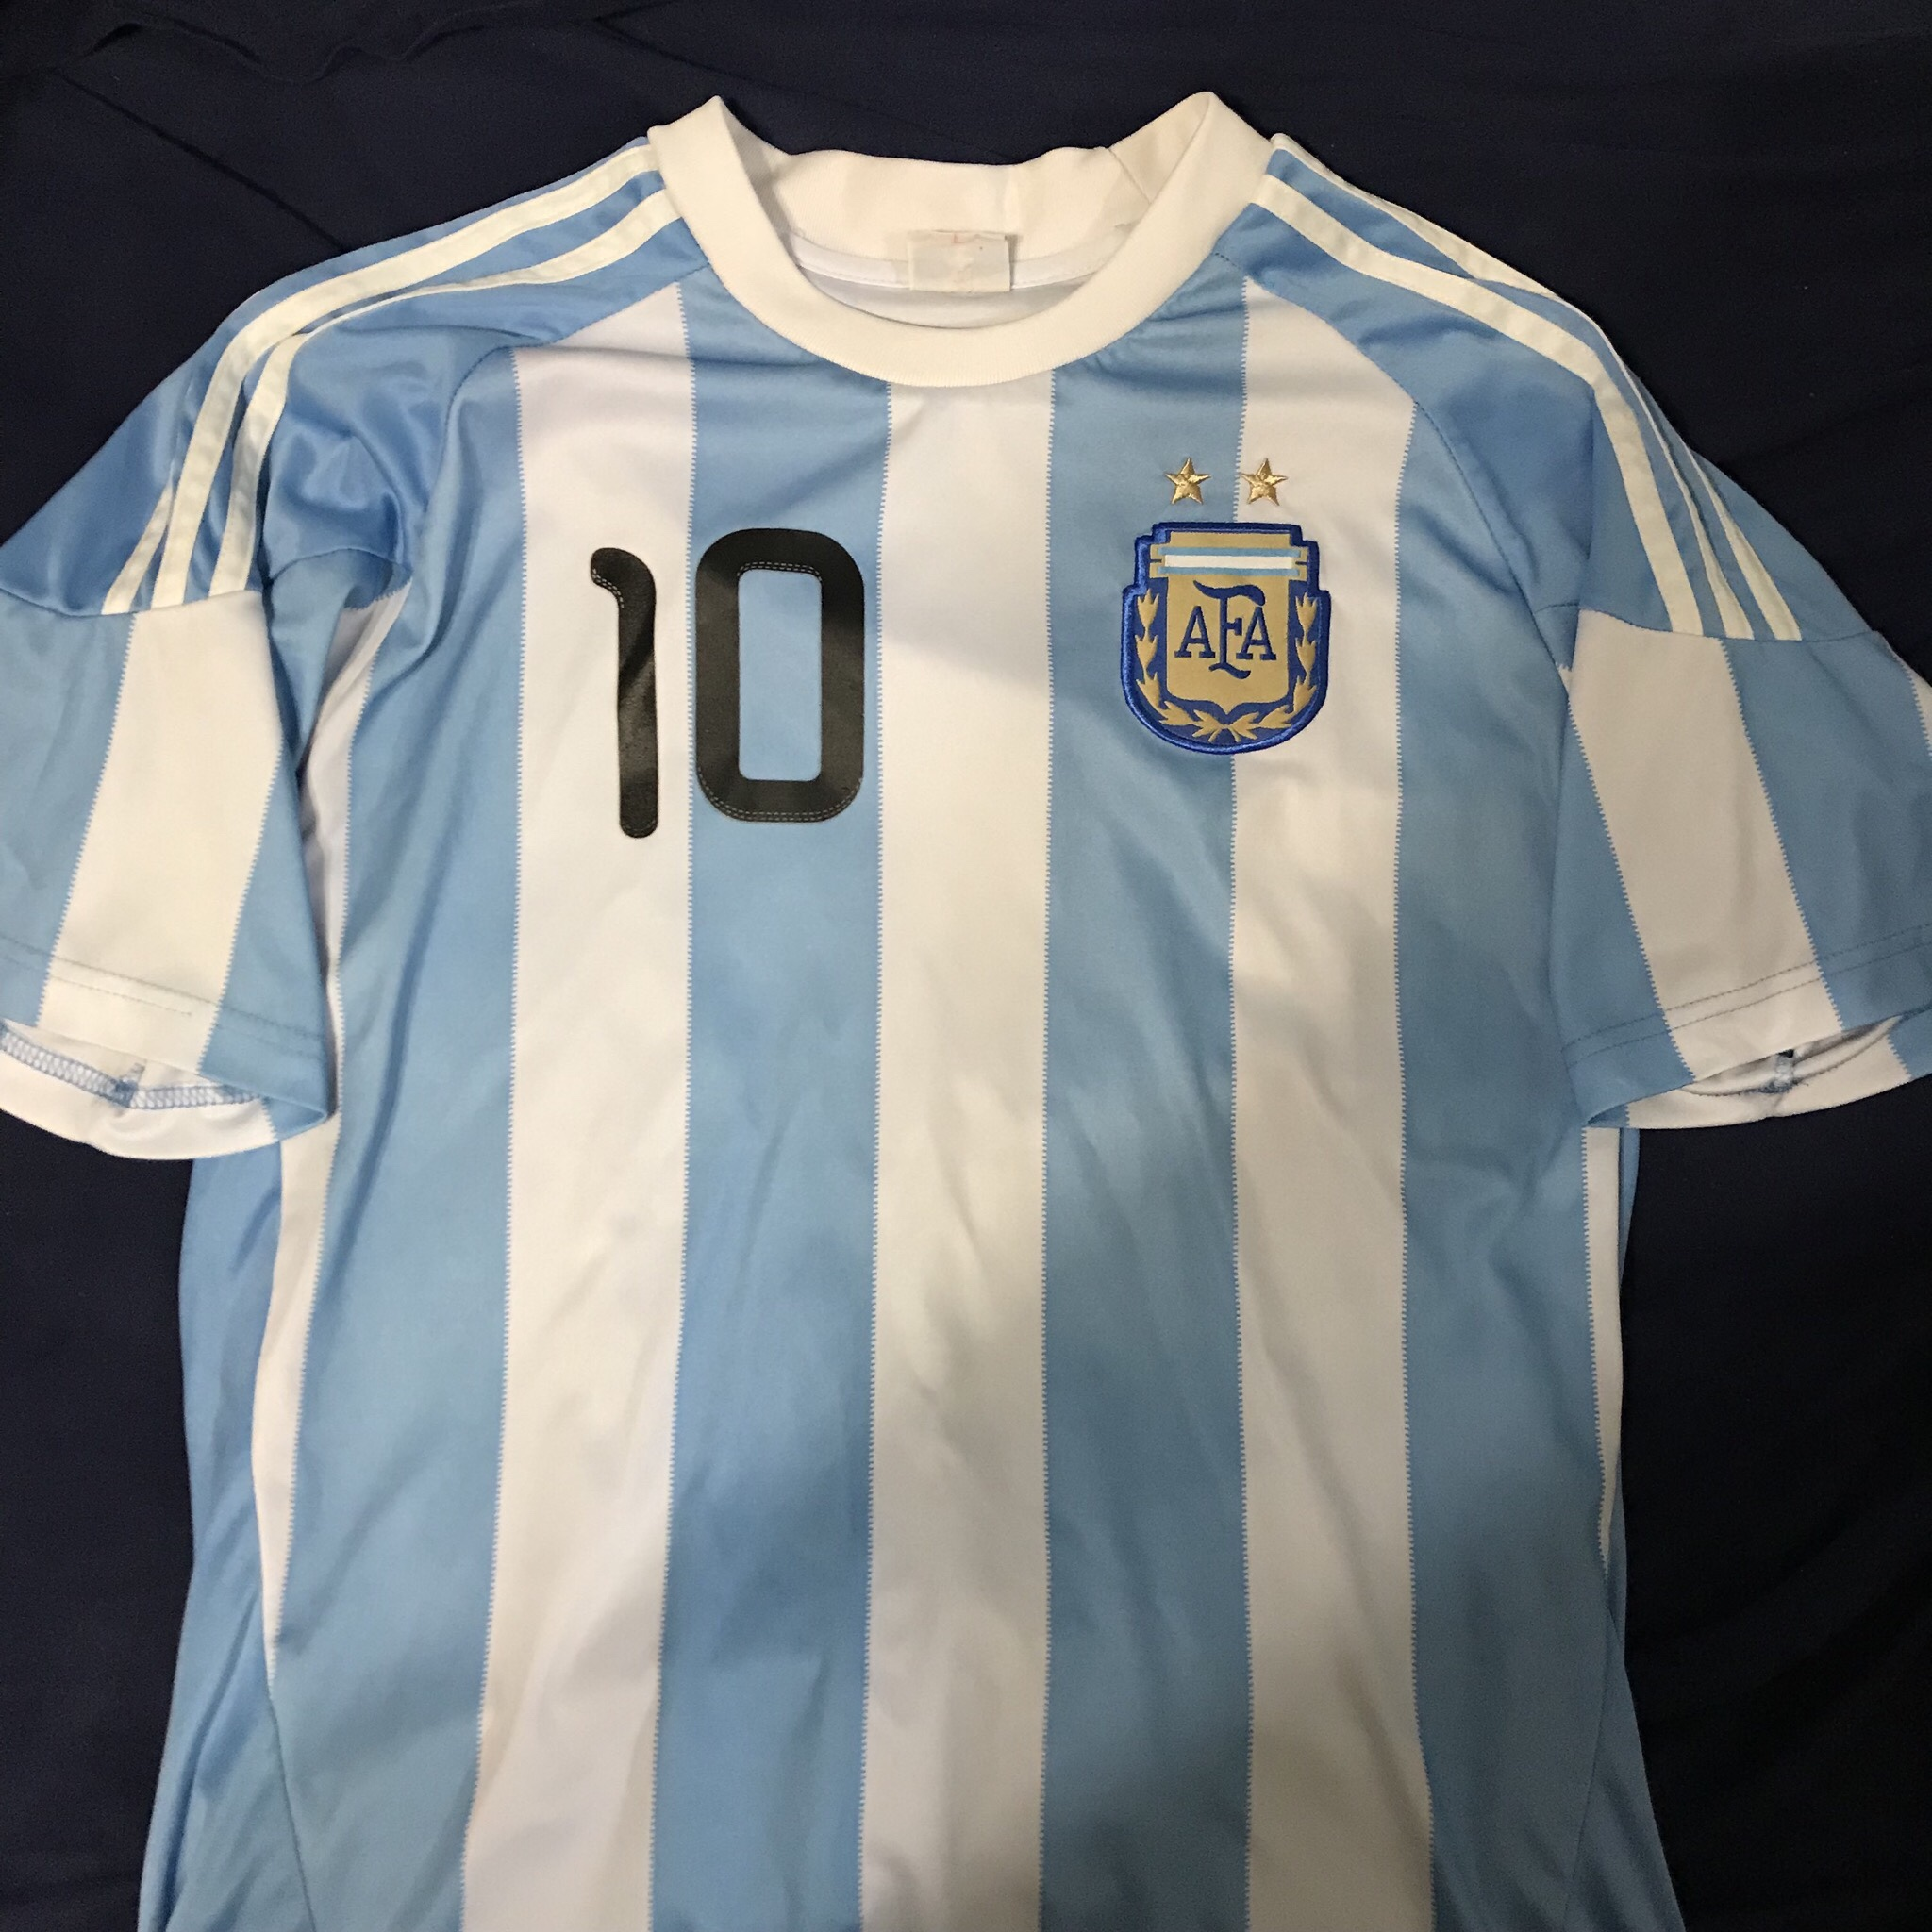 reputable site 0eb39 e111d Lionel Messi Argentina World Cup Jersey from 2010 I... - Depop